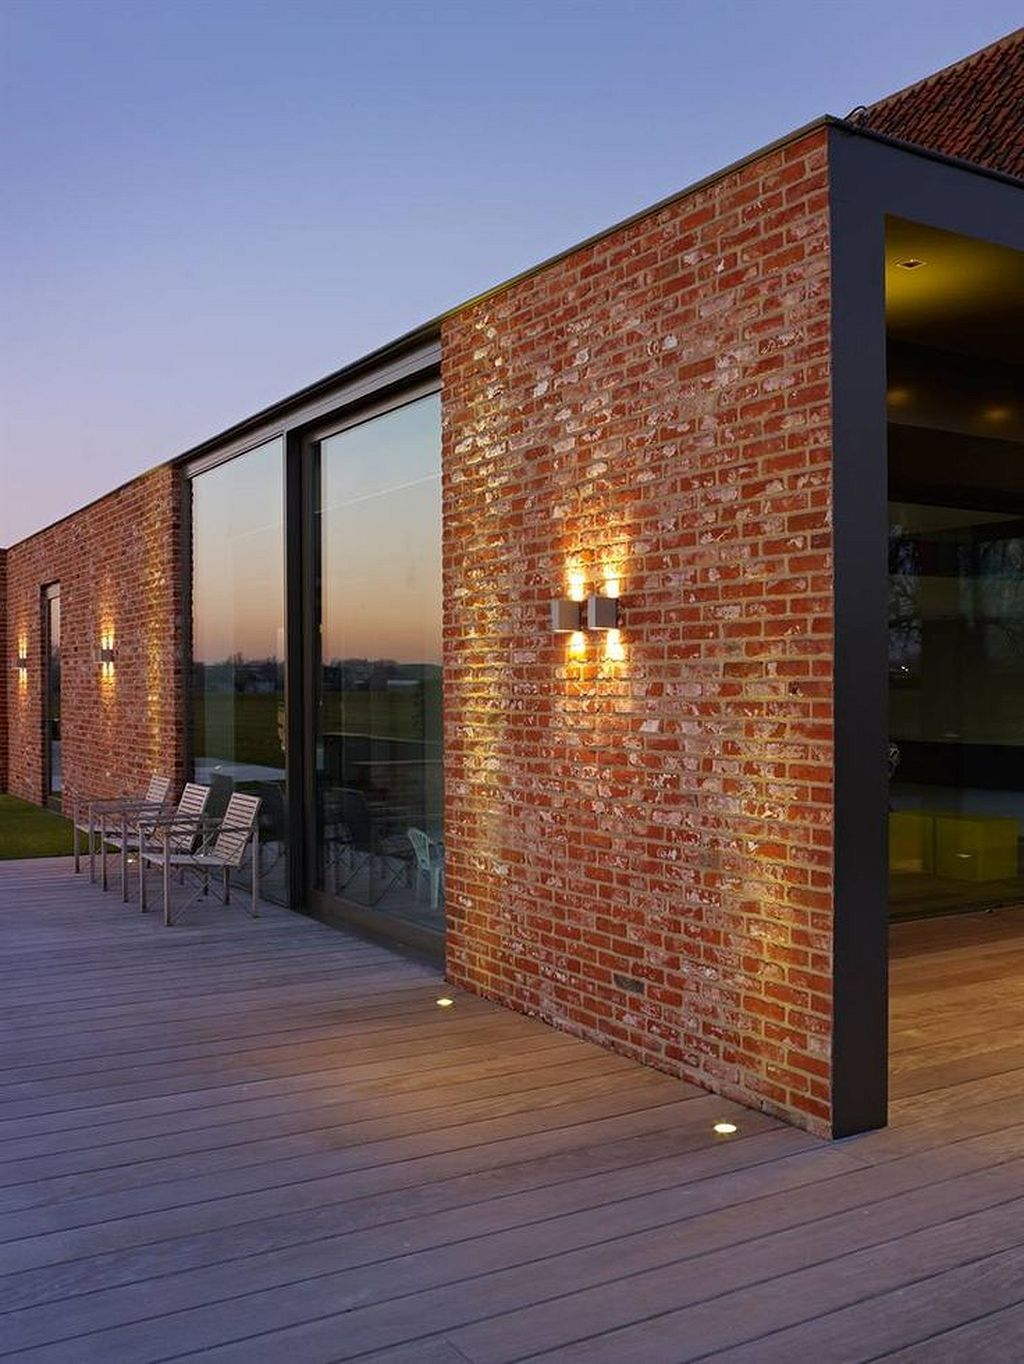 50 Innovative Modern Brick House Design Ideas Brick House Designs Brick Exterior House Modern Brick House